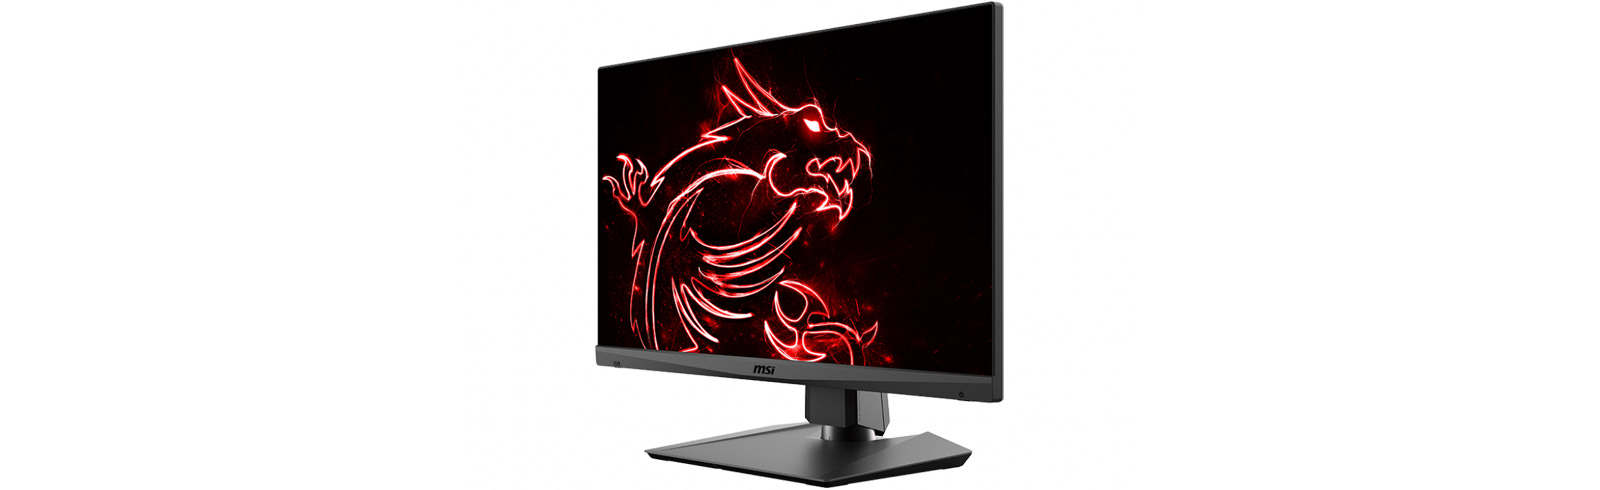 """The MSI Optix MAG274R2 goes official with a 27"""" IPS display, 165Hz refresh rate"""